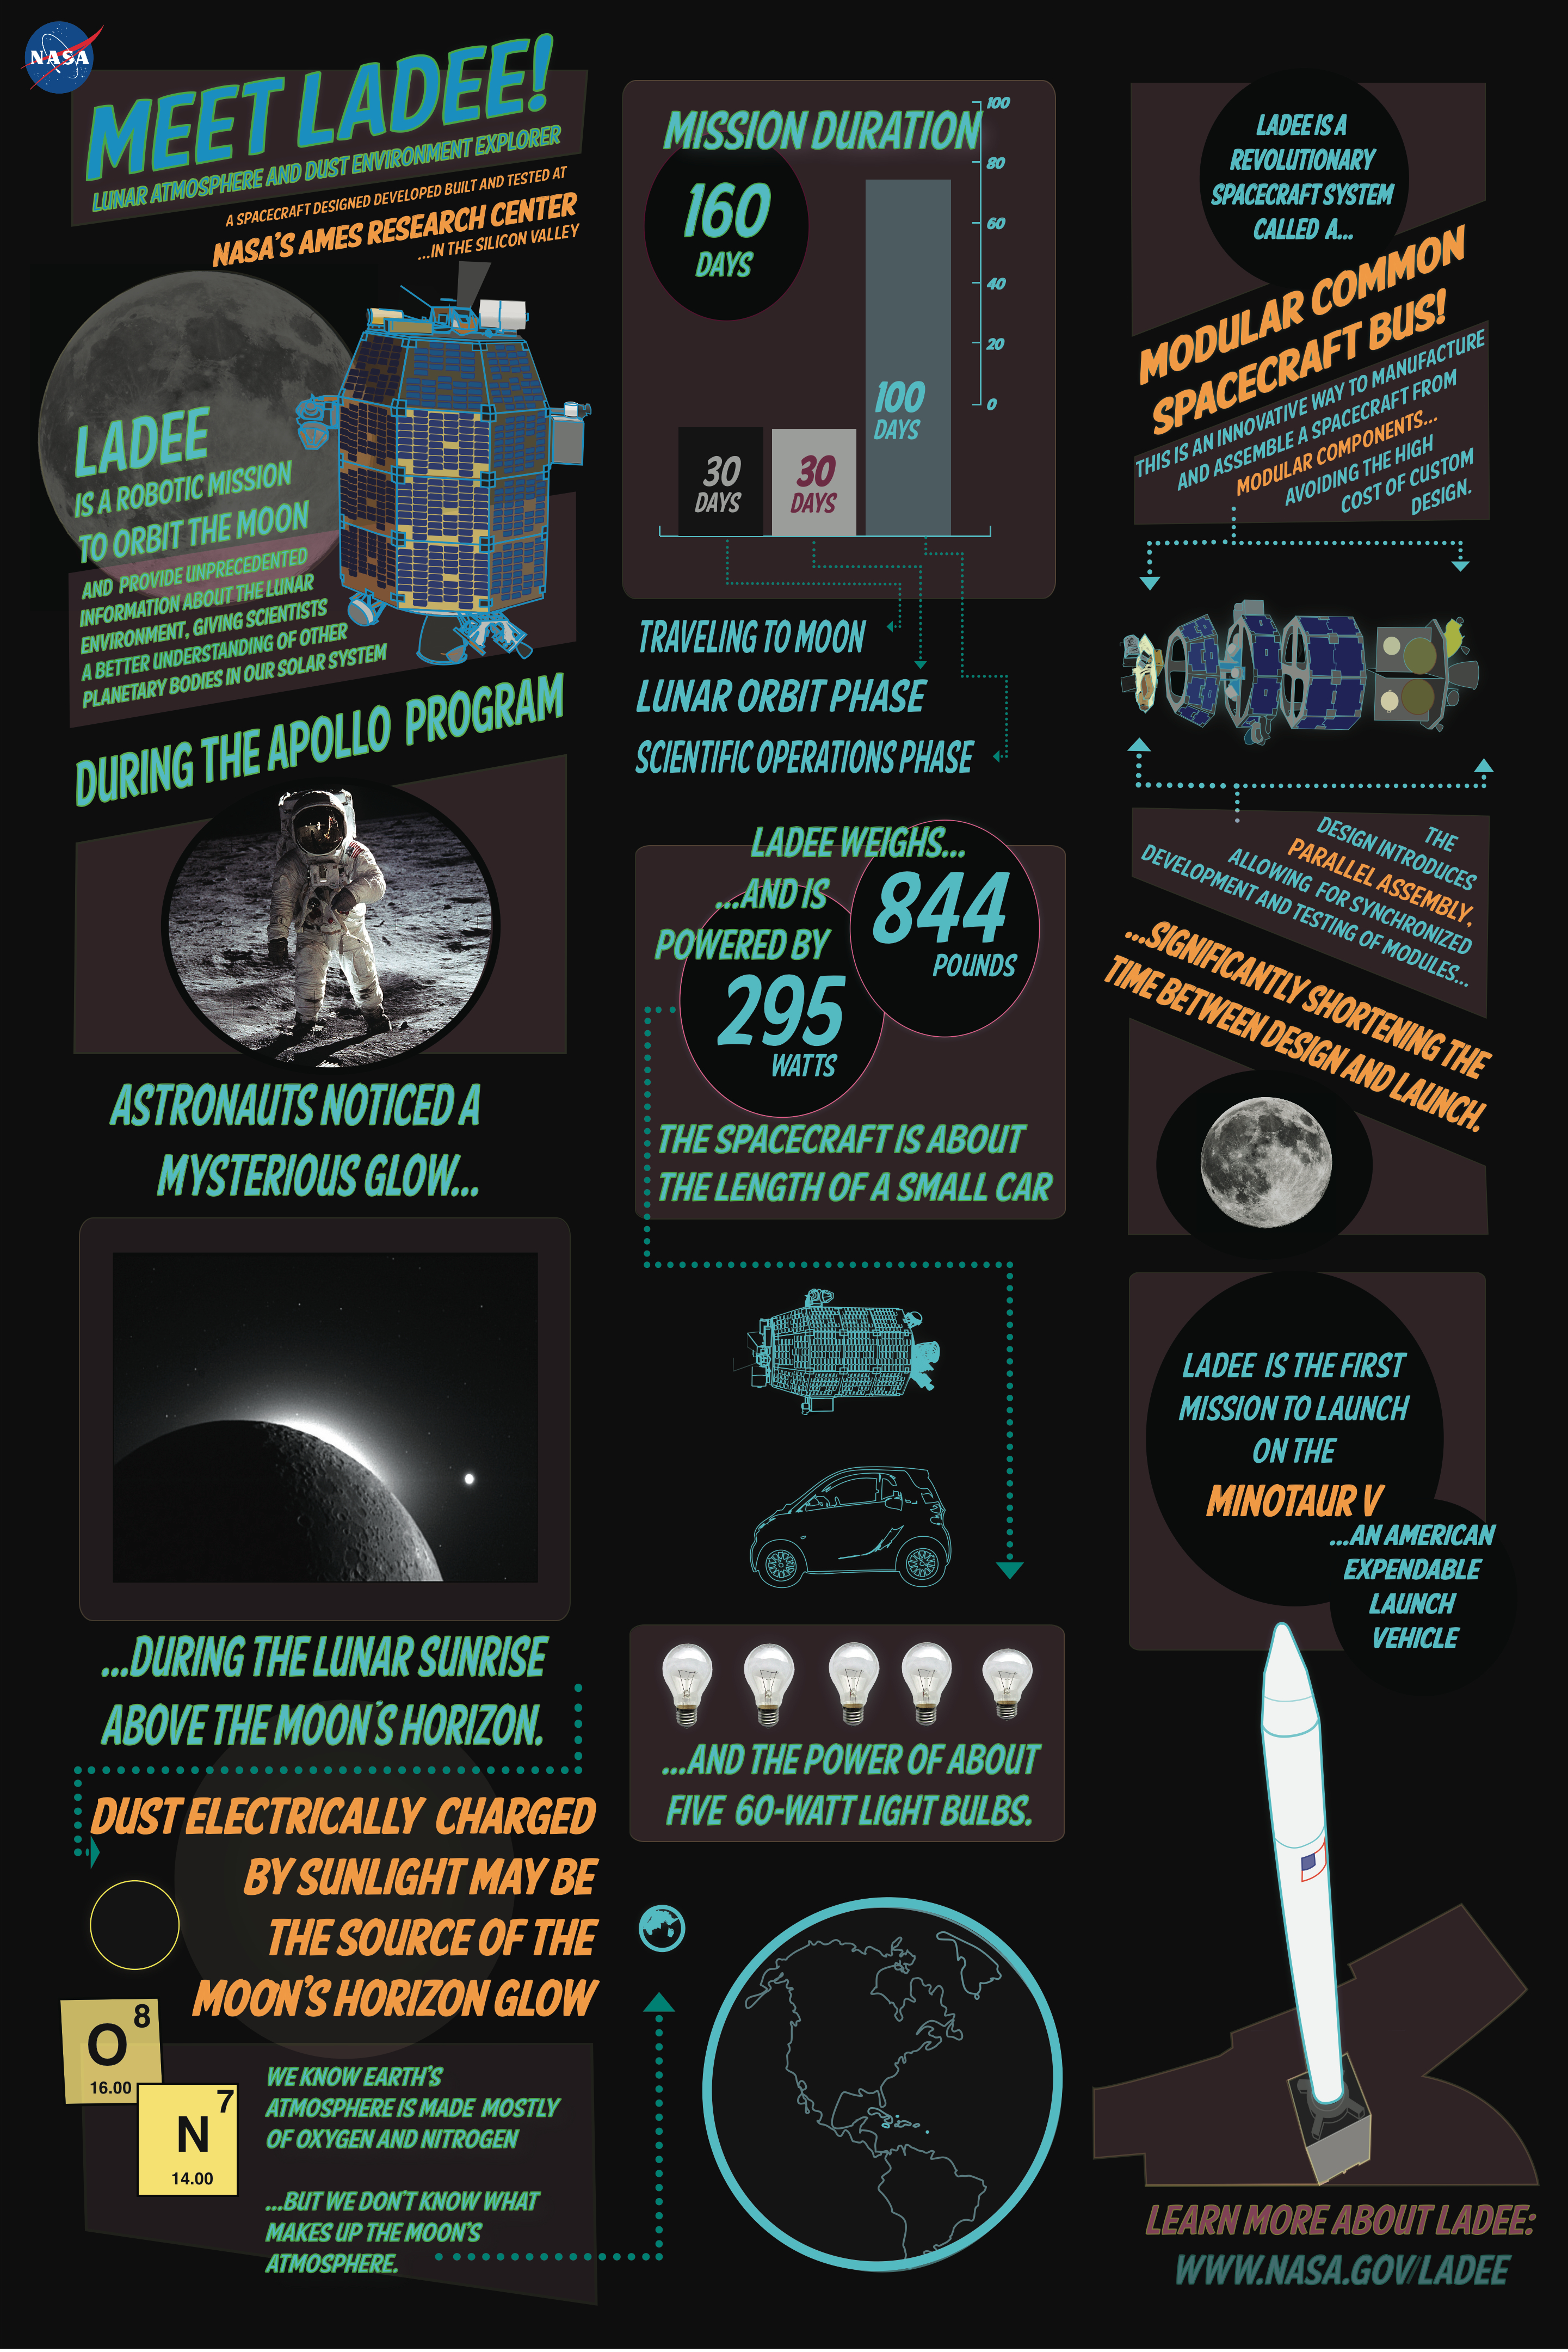 LADEE Mission Infographic - Poster Version : NASA